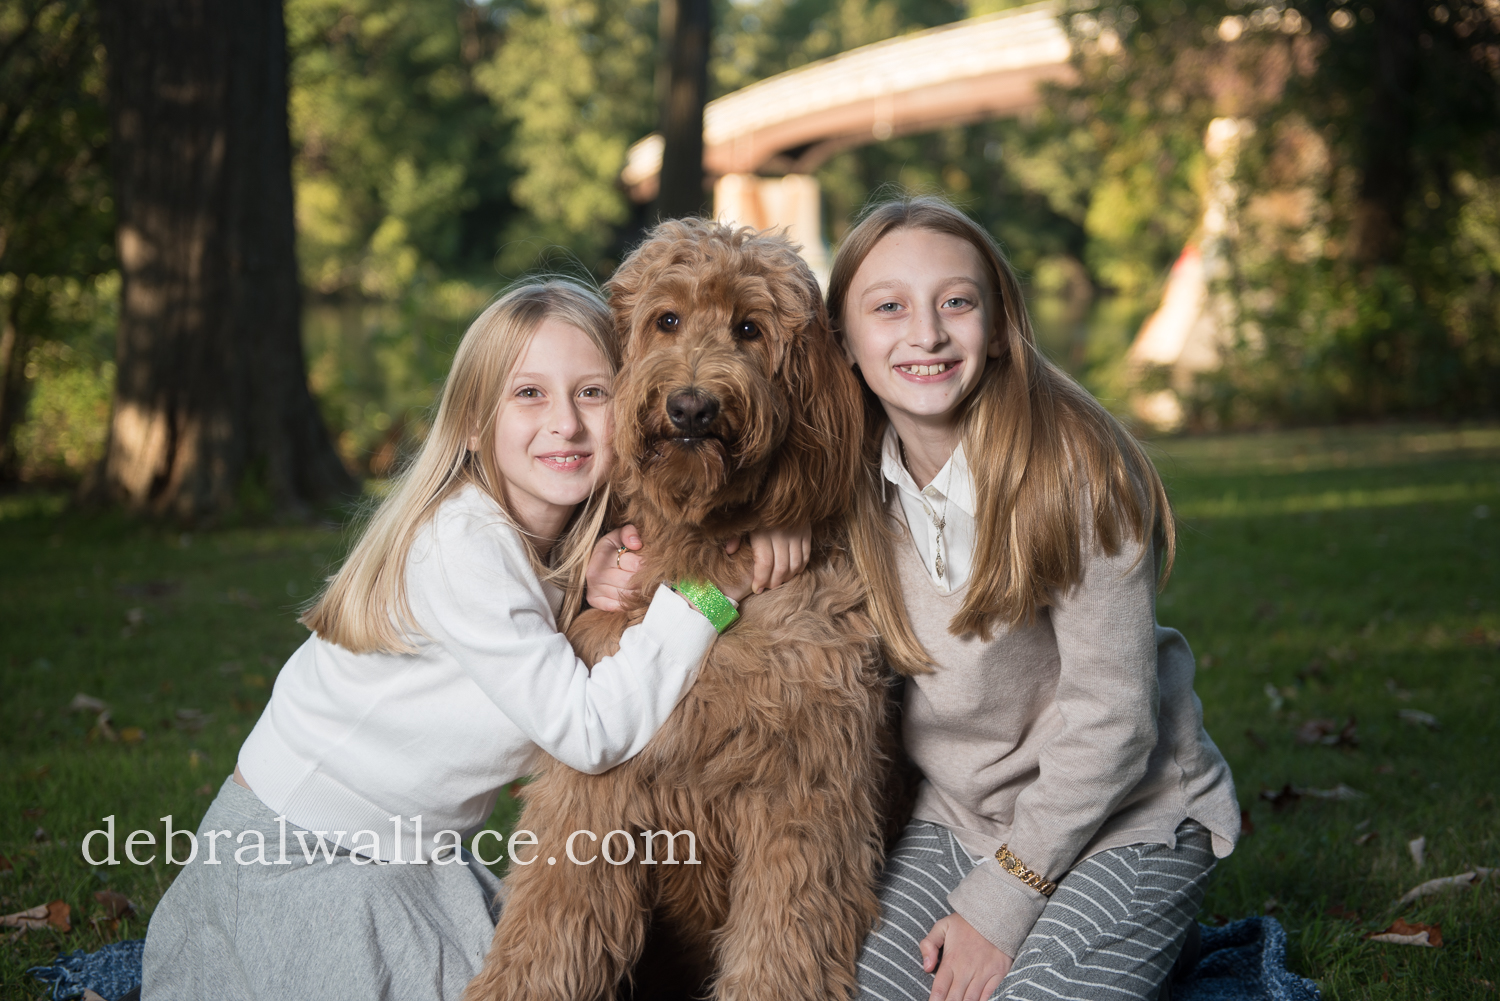 Genesee Valley Park Pet and Family Photography